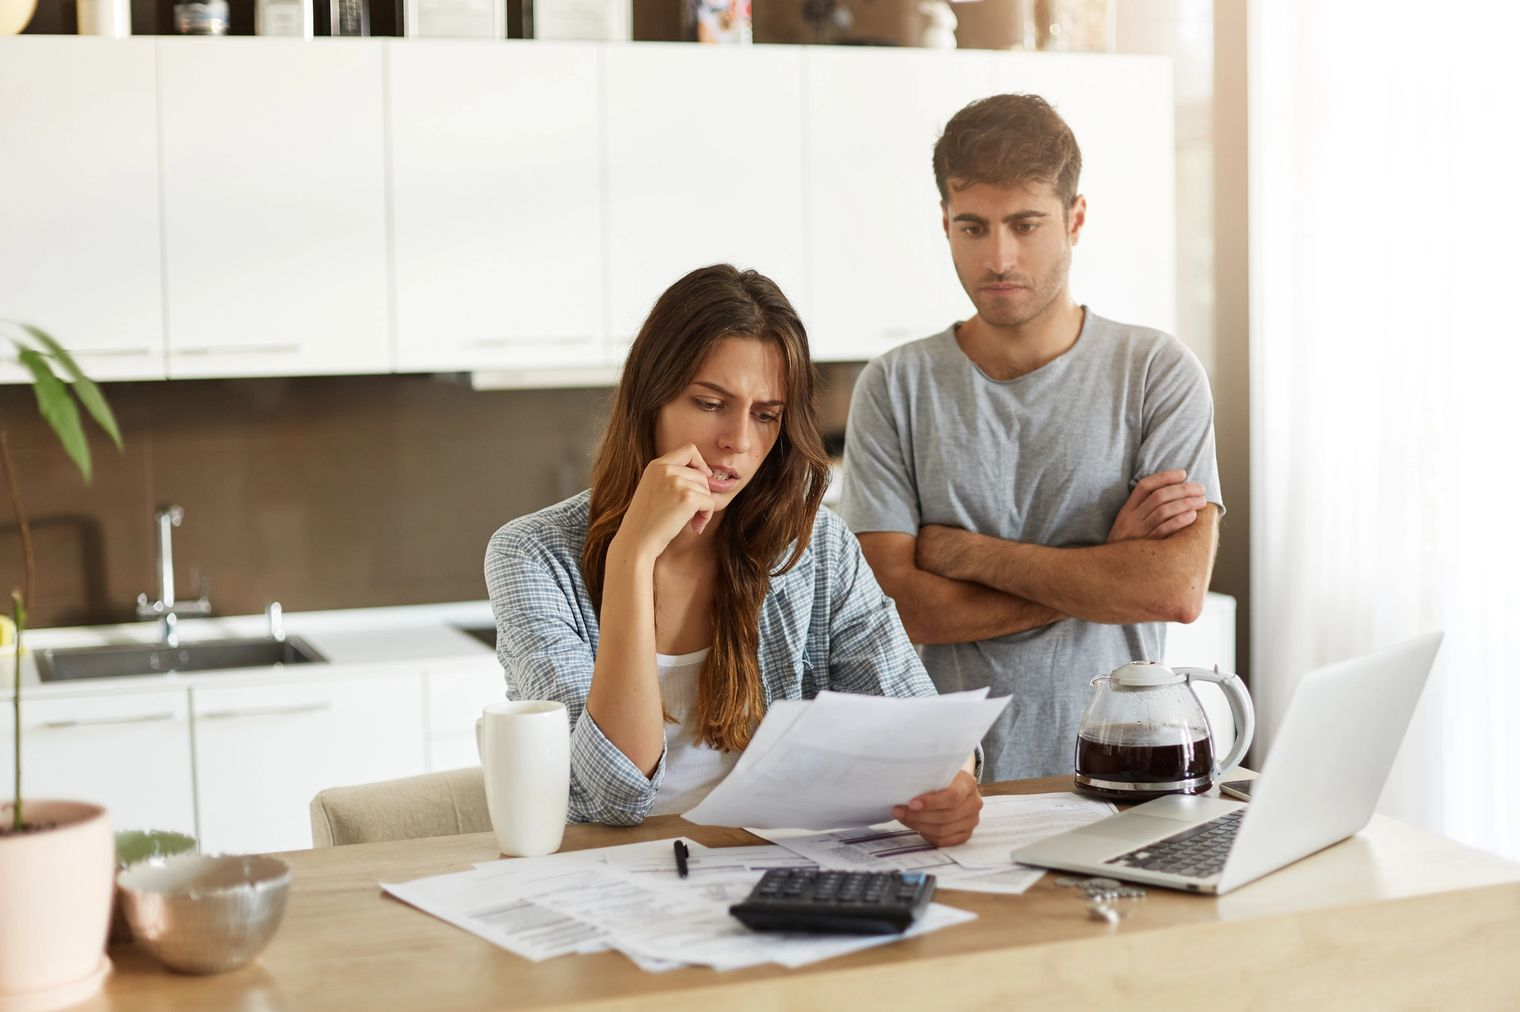 Had your home loan for 3+ years? You're probably paying too much, warns ACCC